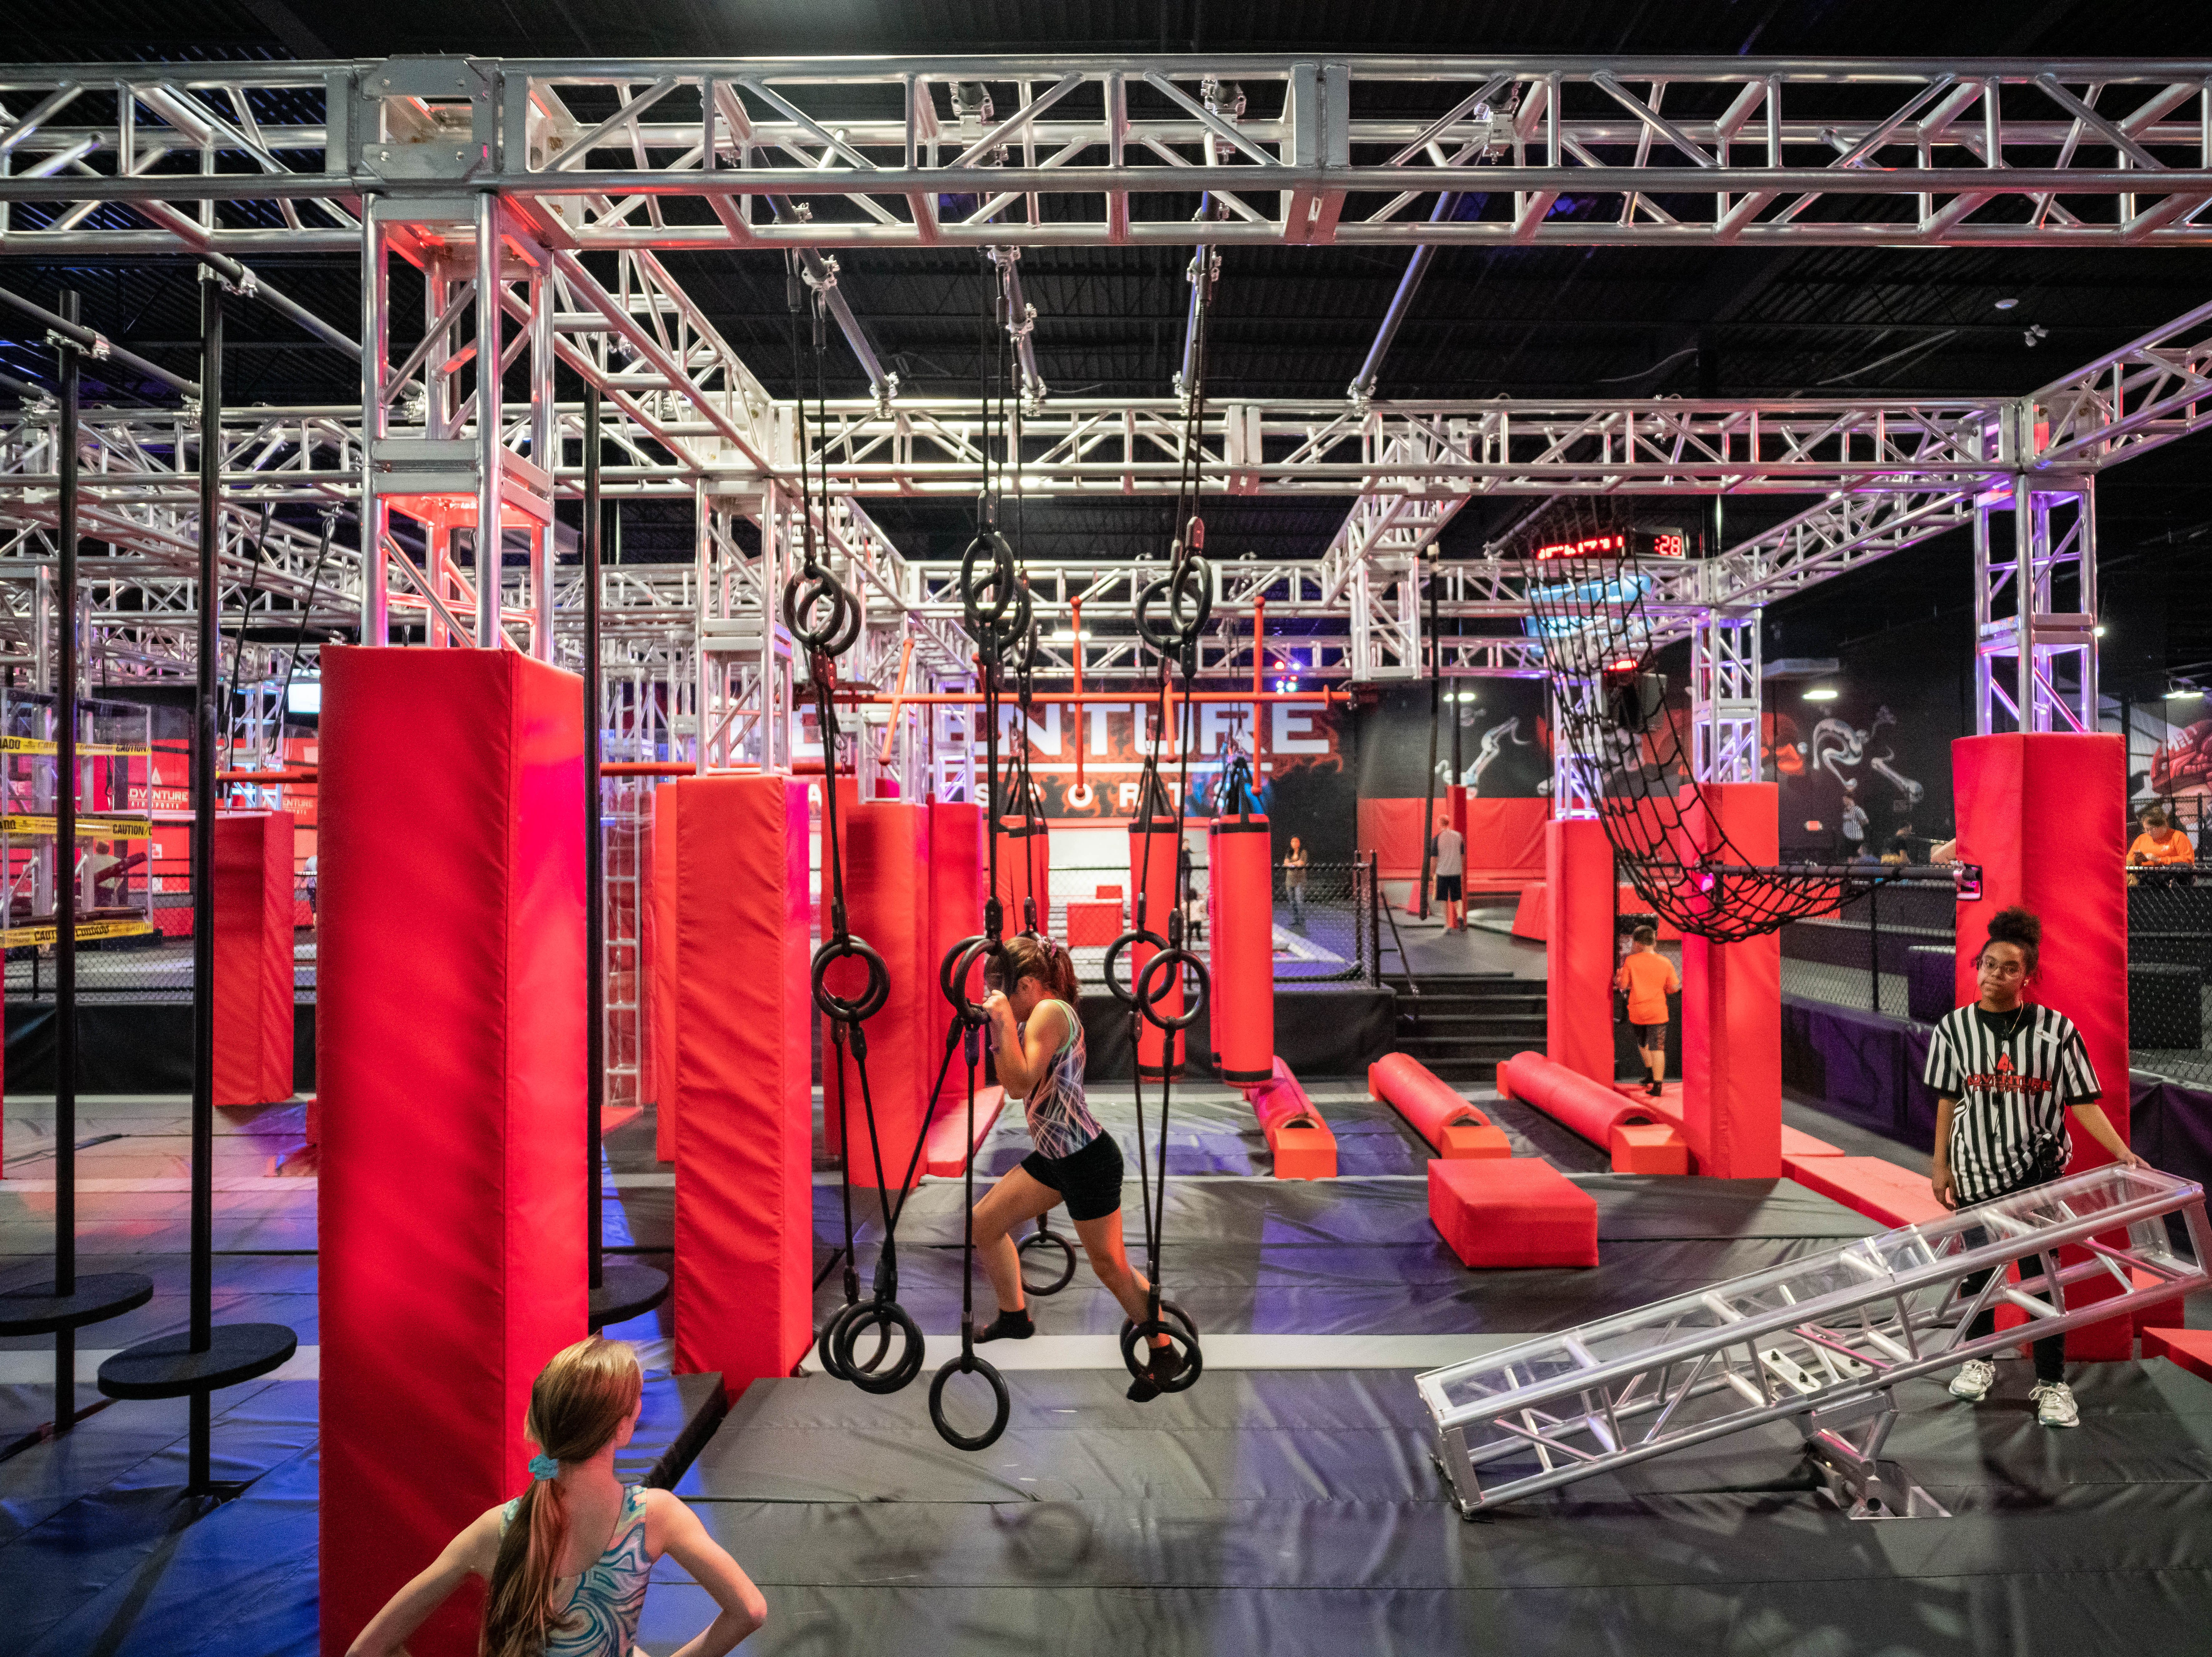 Adventure Action Park will open its third location in Knoxville in May 2019. The family entertainment center will feature trampolines, an obstacle course, zip lines and more.